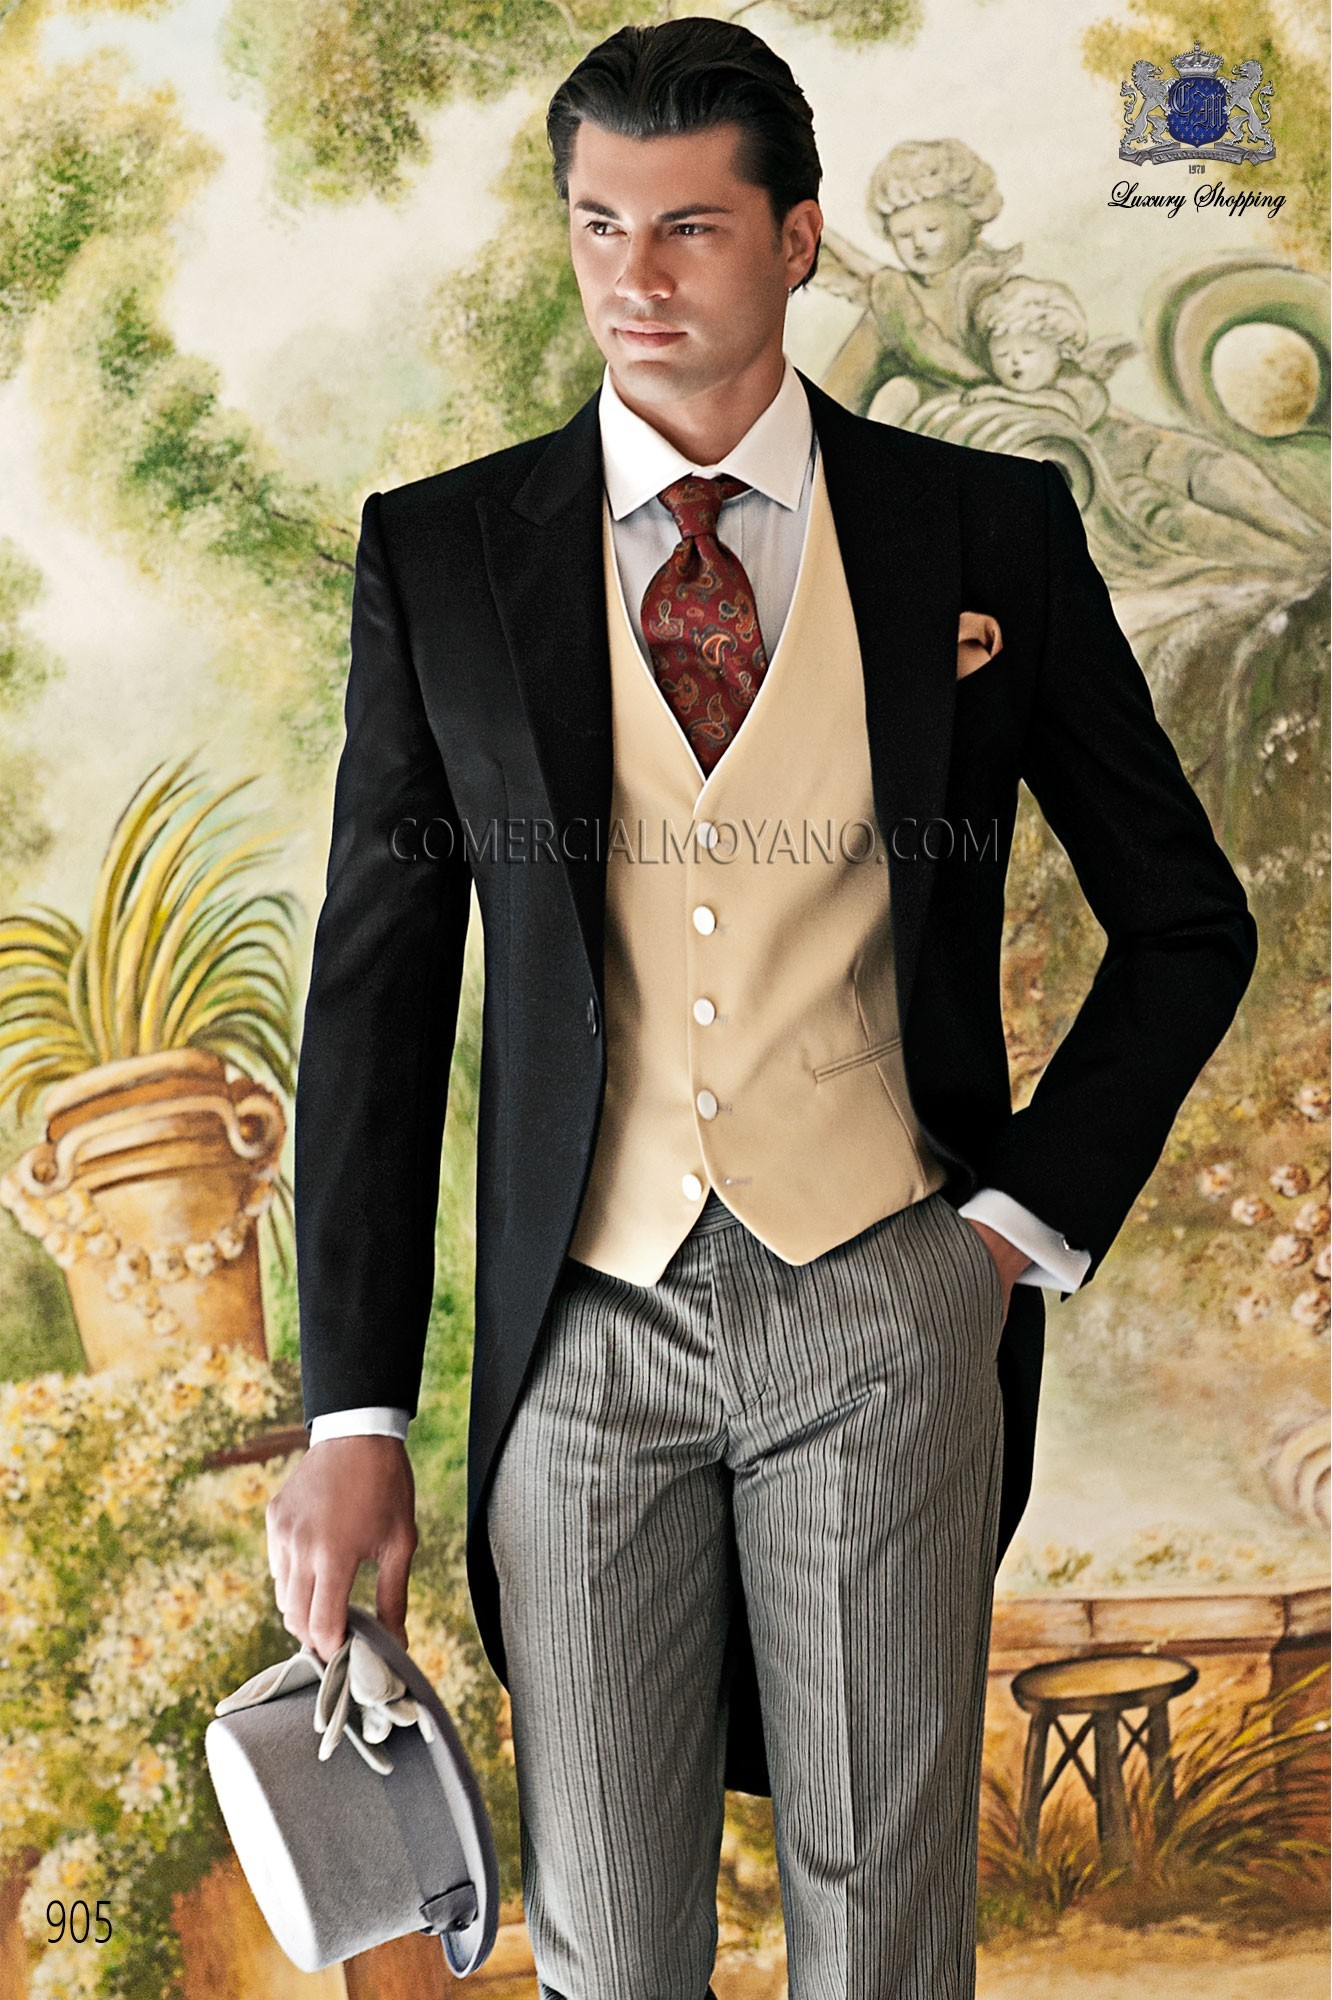 Gentleman black men wedding suit model 905 Ottavio Nuccio Gala